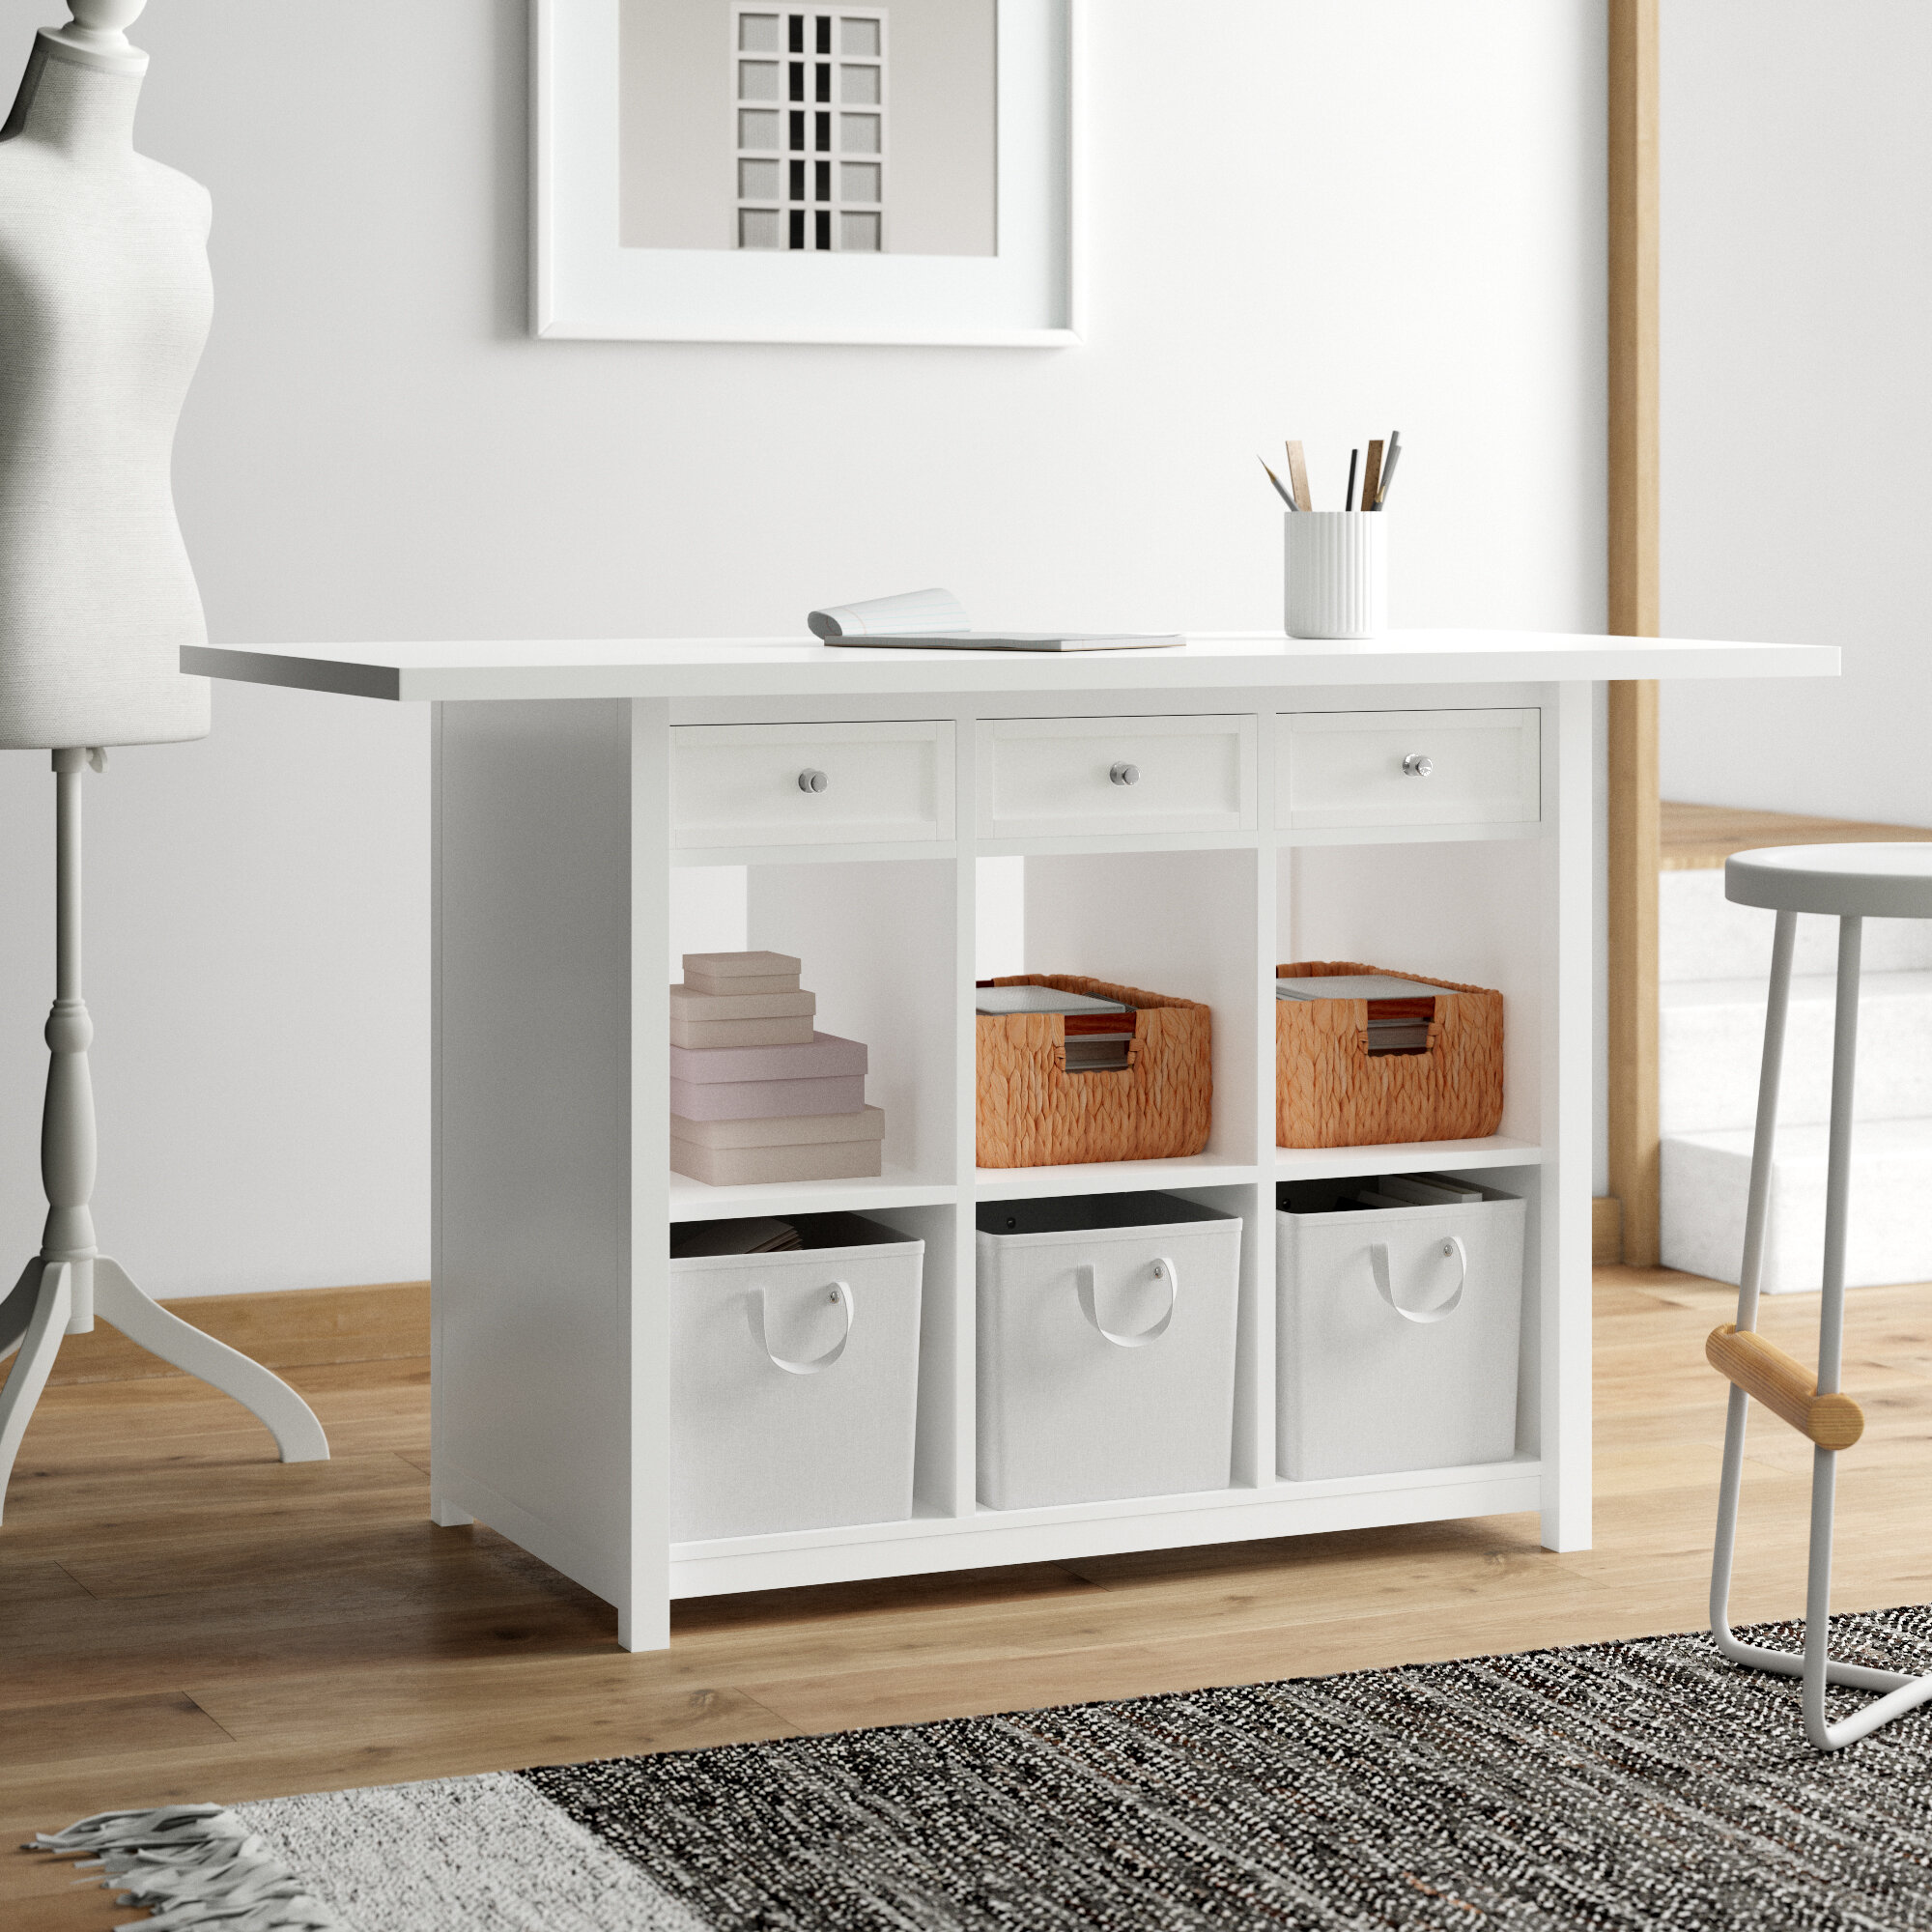 Wooden Folding Sewing Cabinet Rustic Gray Farmhouse Style Multifunction Large Sewing Craft Table With Storage Shelves And Lockable Casters Space Saving Wood Sewing Furniture For Small Spaces Sewing Cabinets Arts Crafts Sewing